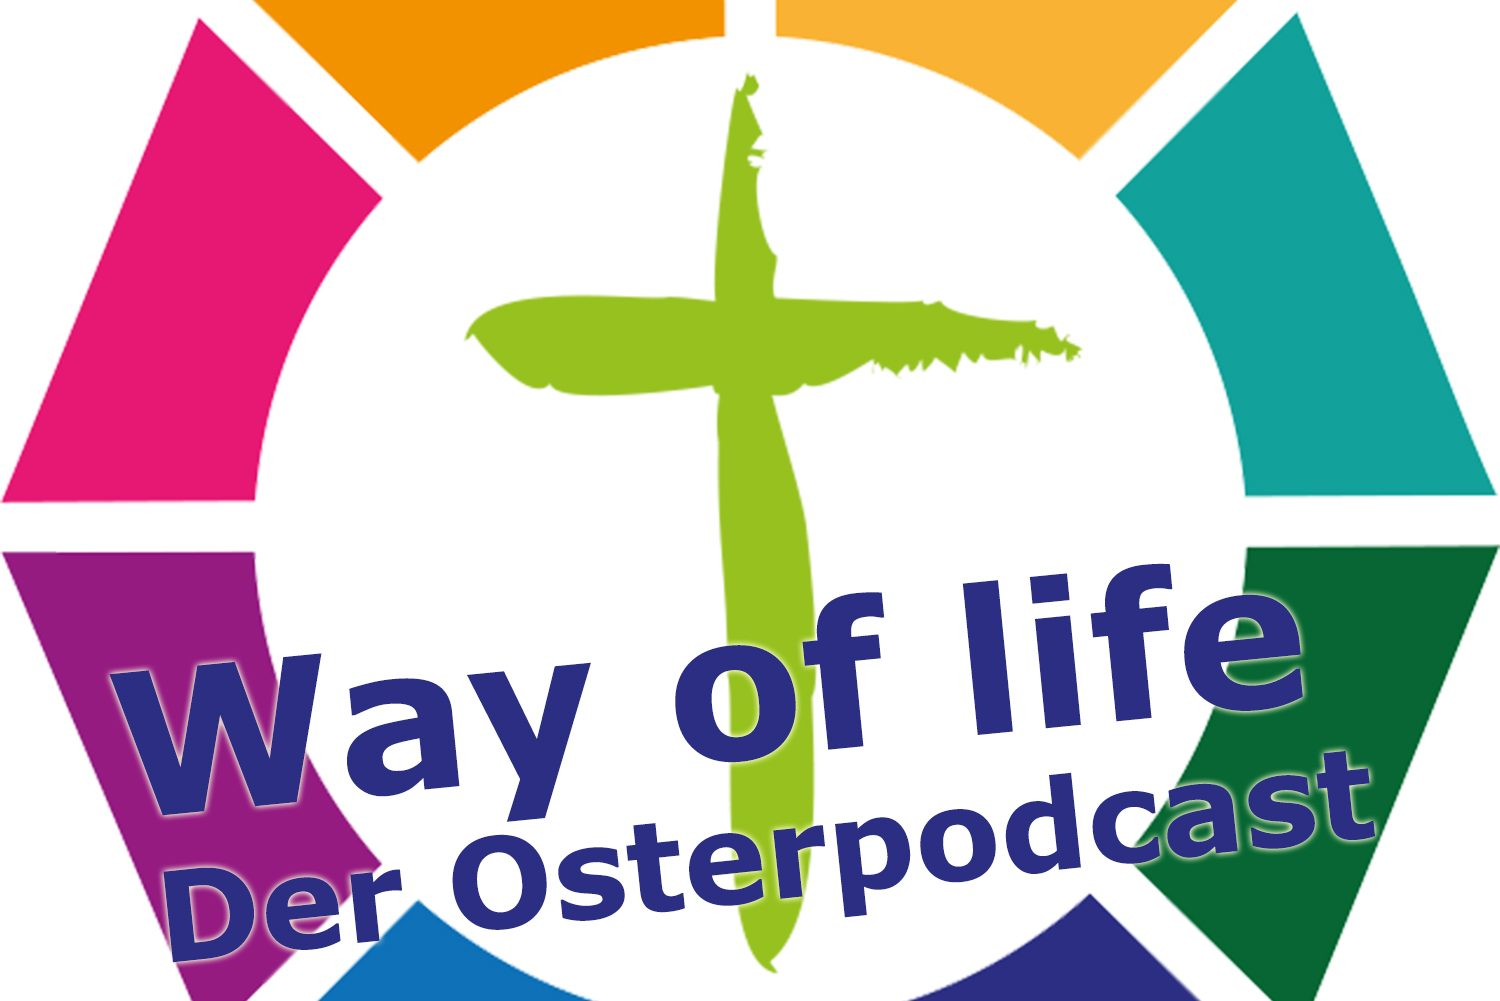 """Way of life – Der Osterpodcast"""